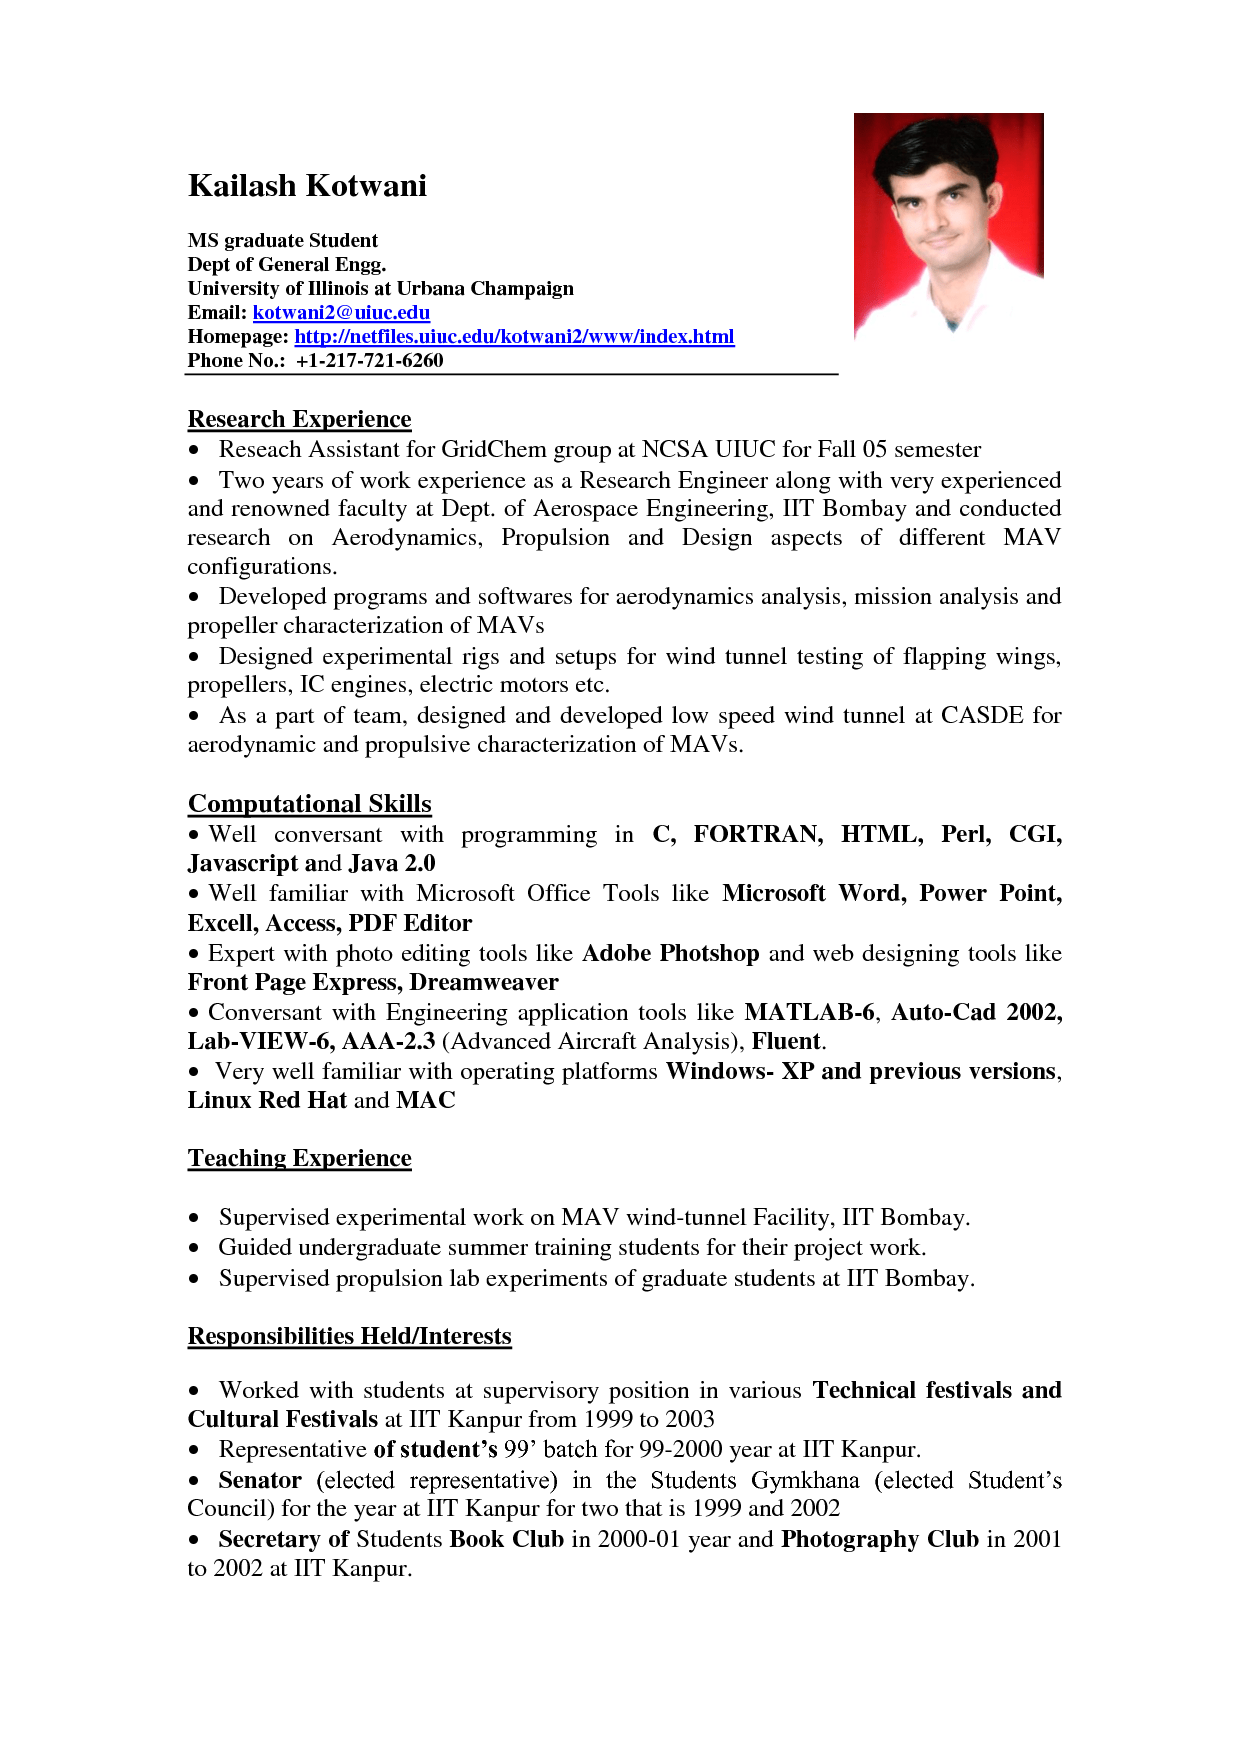 Resume Template Pinterest 11 Student Resume Samples No Experience Resume